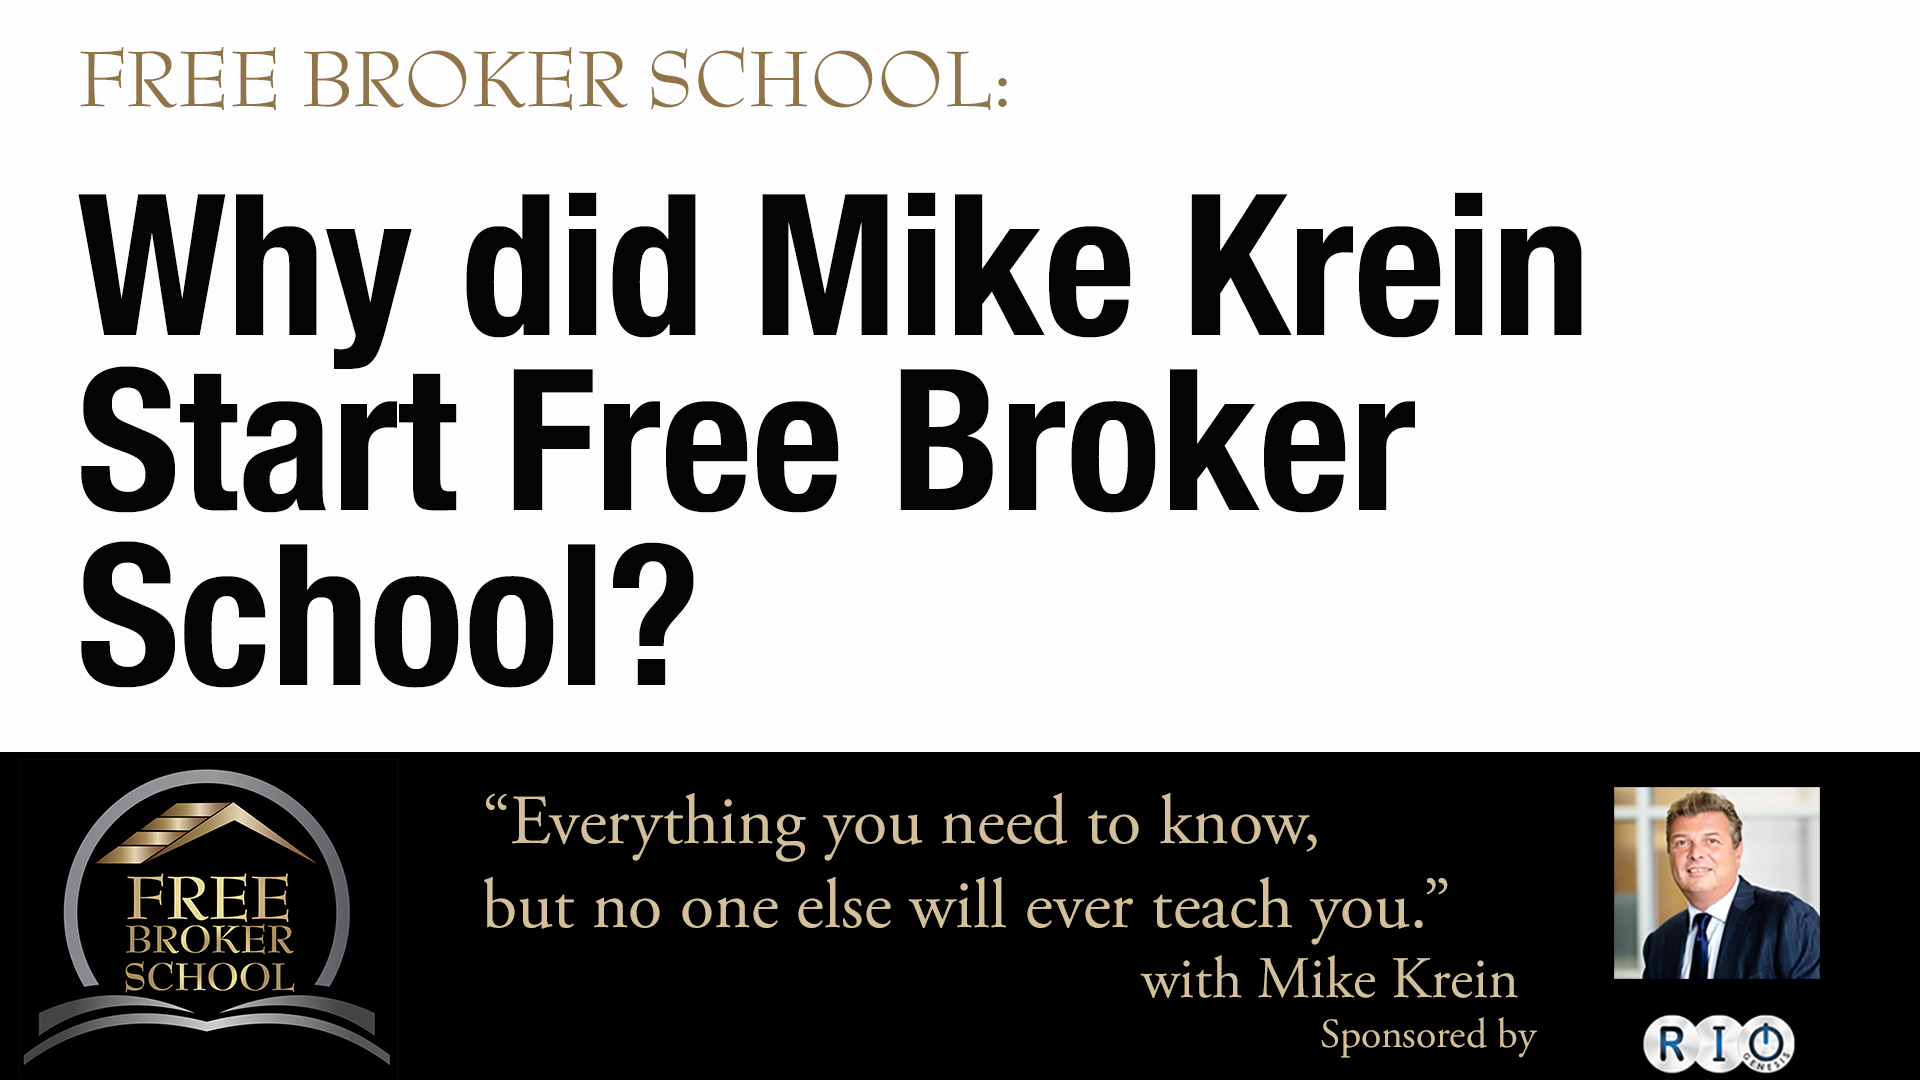 Free Broker School: Why did Mike Krein Start Free Broker School?